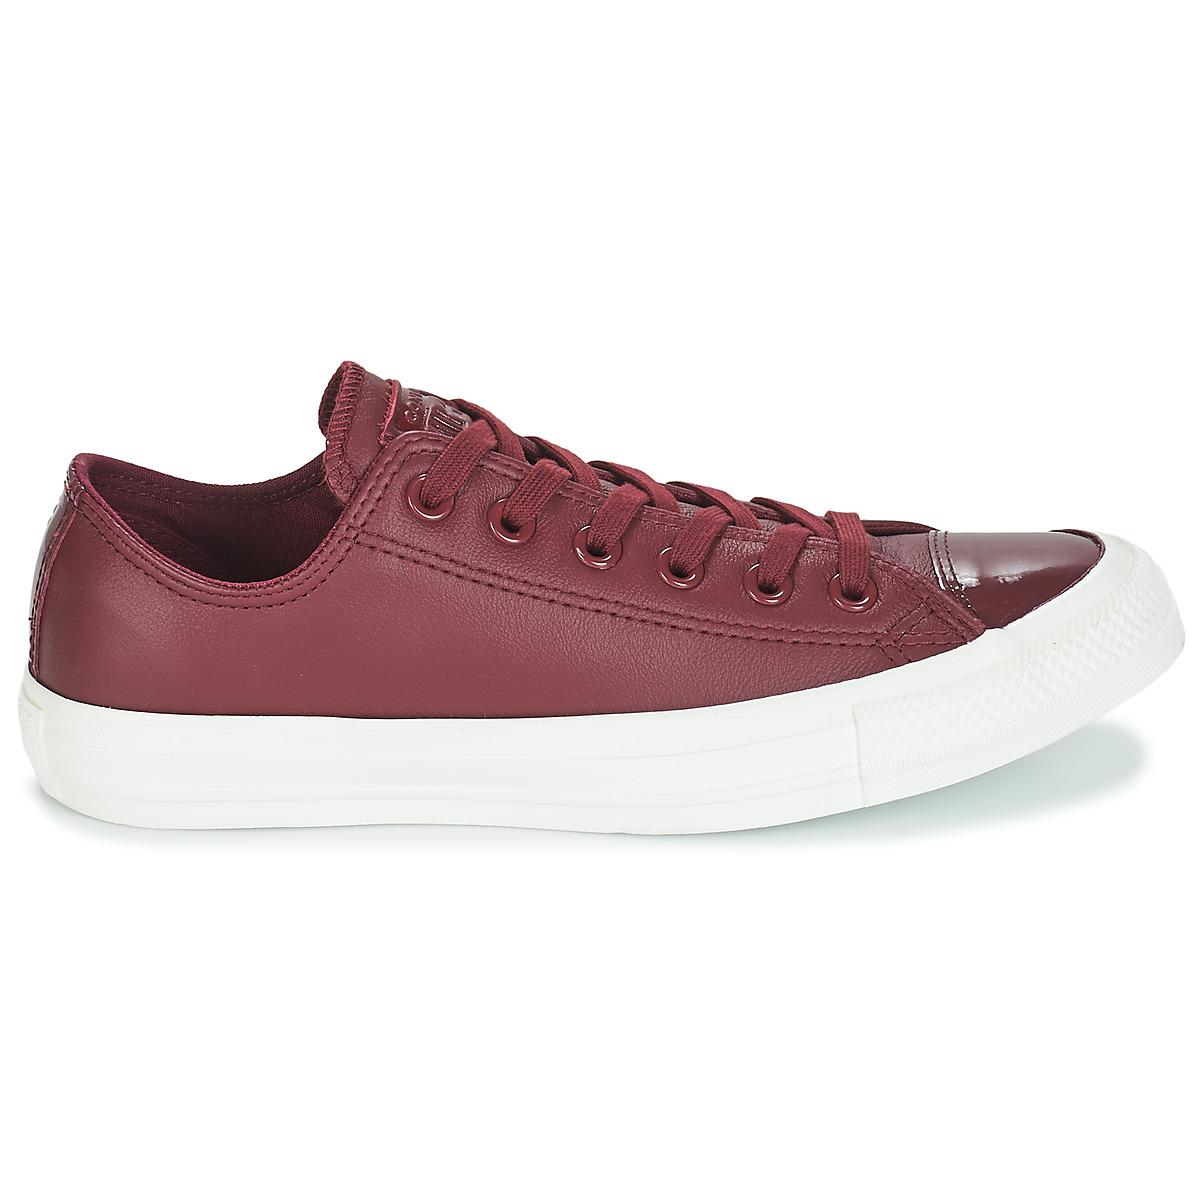 69155361aedf Converse - Red Chuck Taylor All Star Leather Ox Shoes (trainers) - Lyst.  View fullscreen